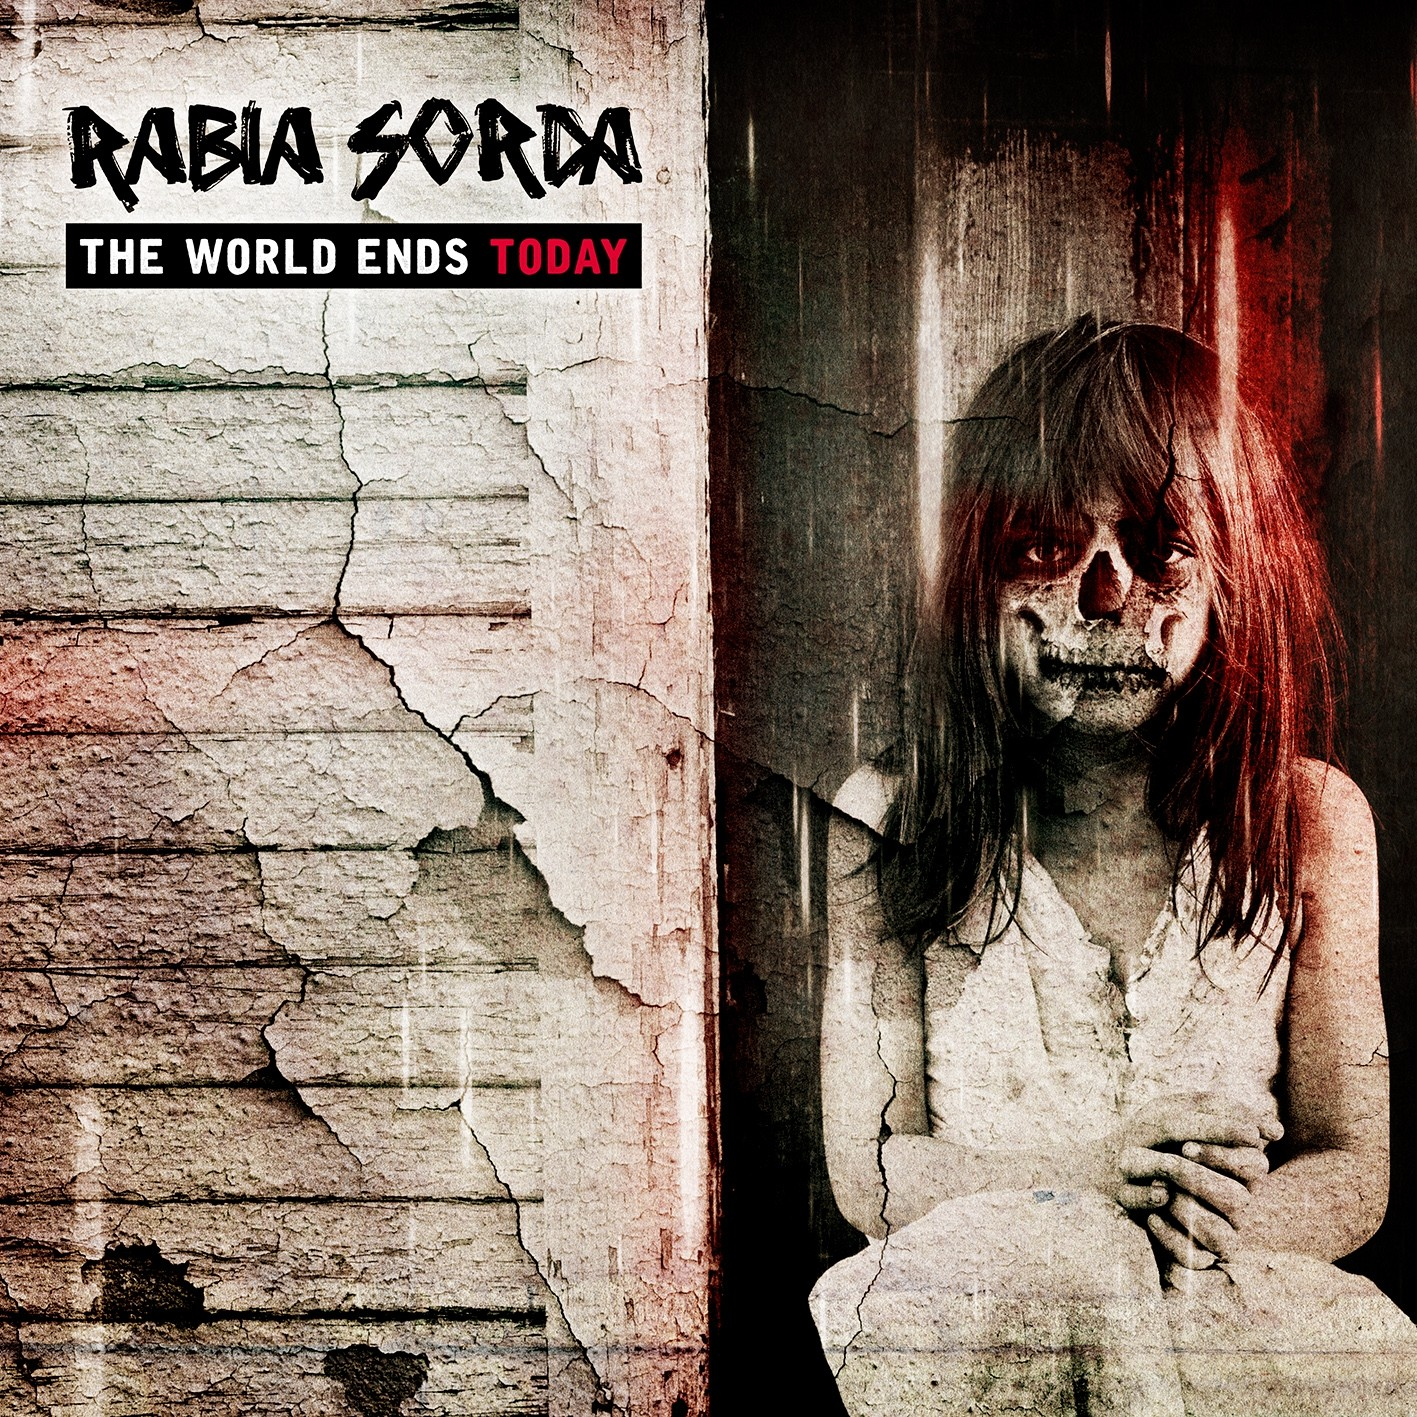 Rabia Sorda - The World Ends Today - 2CD